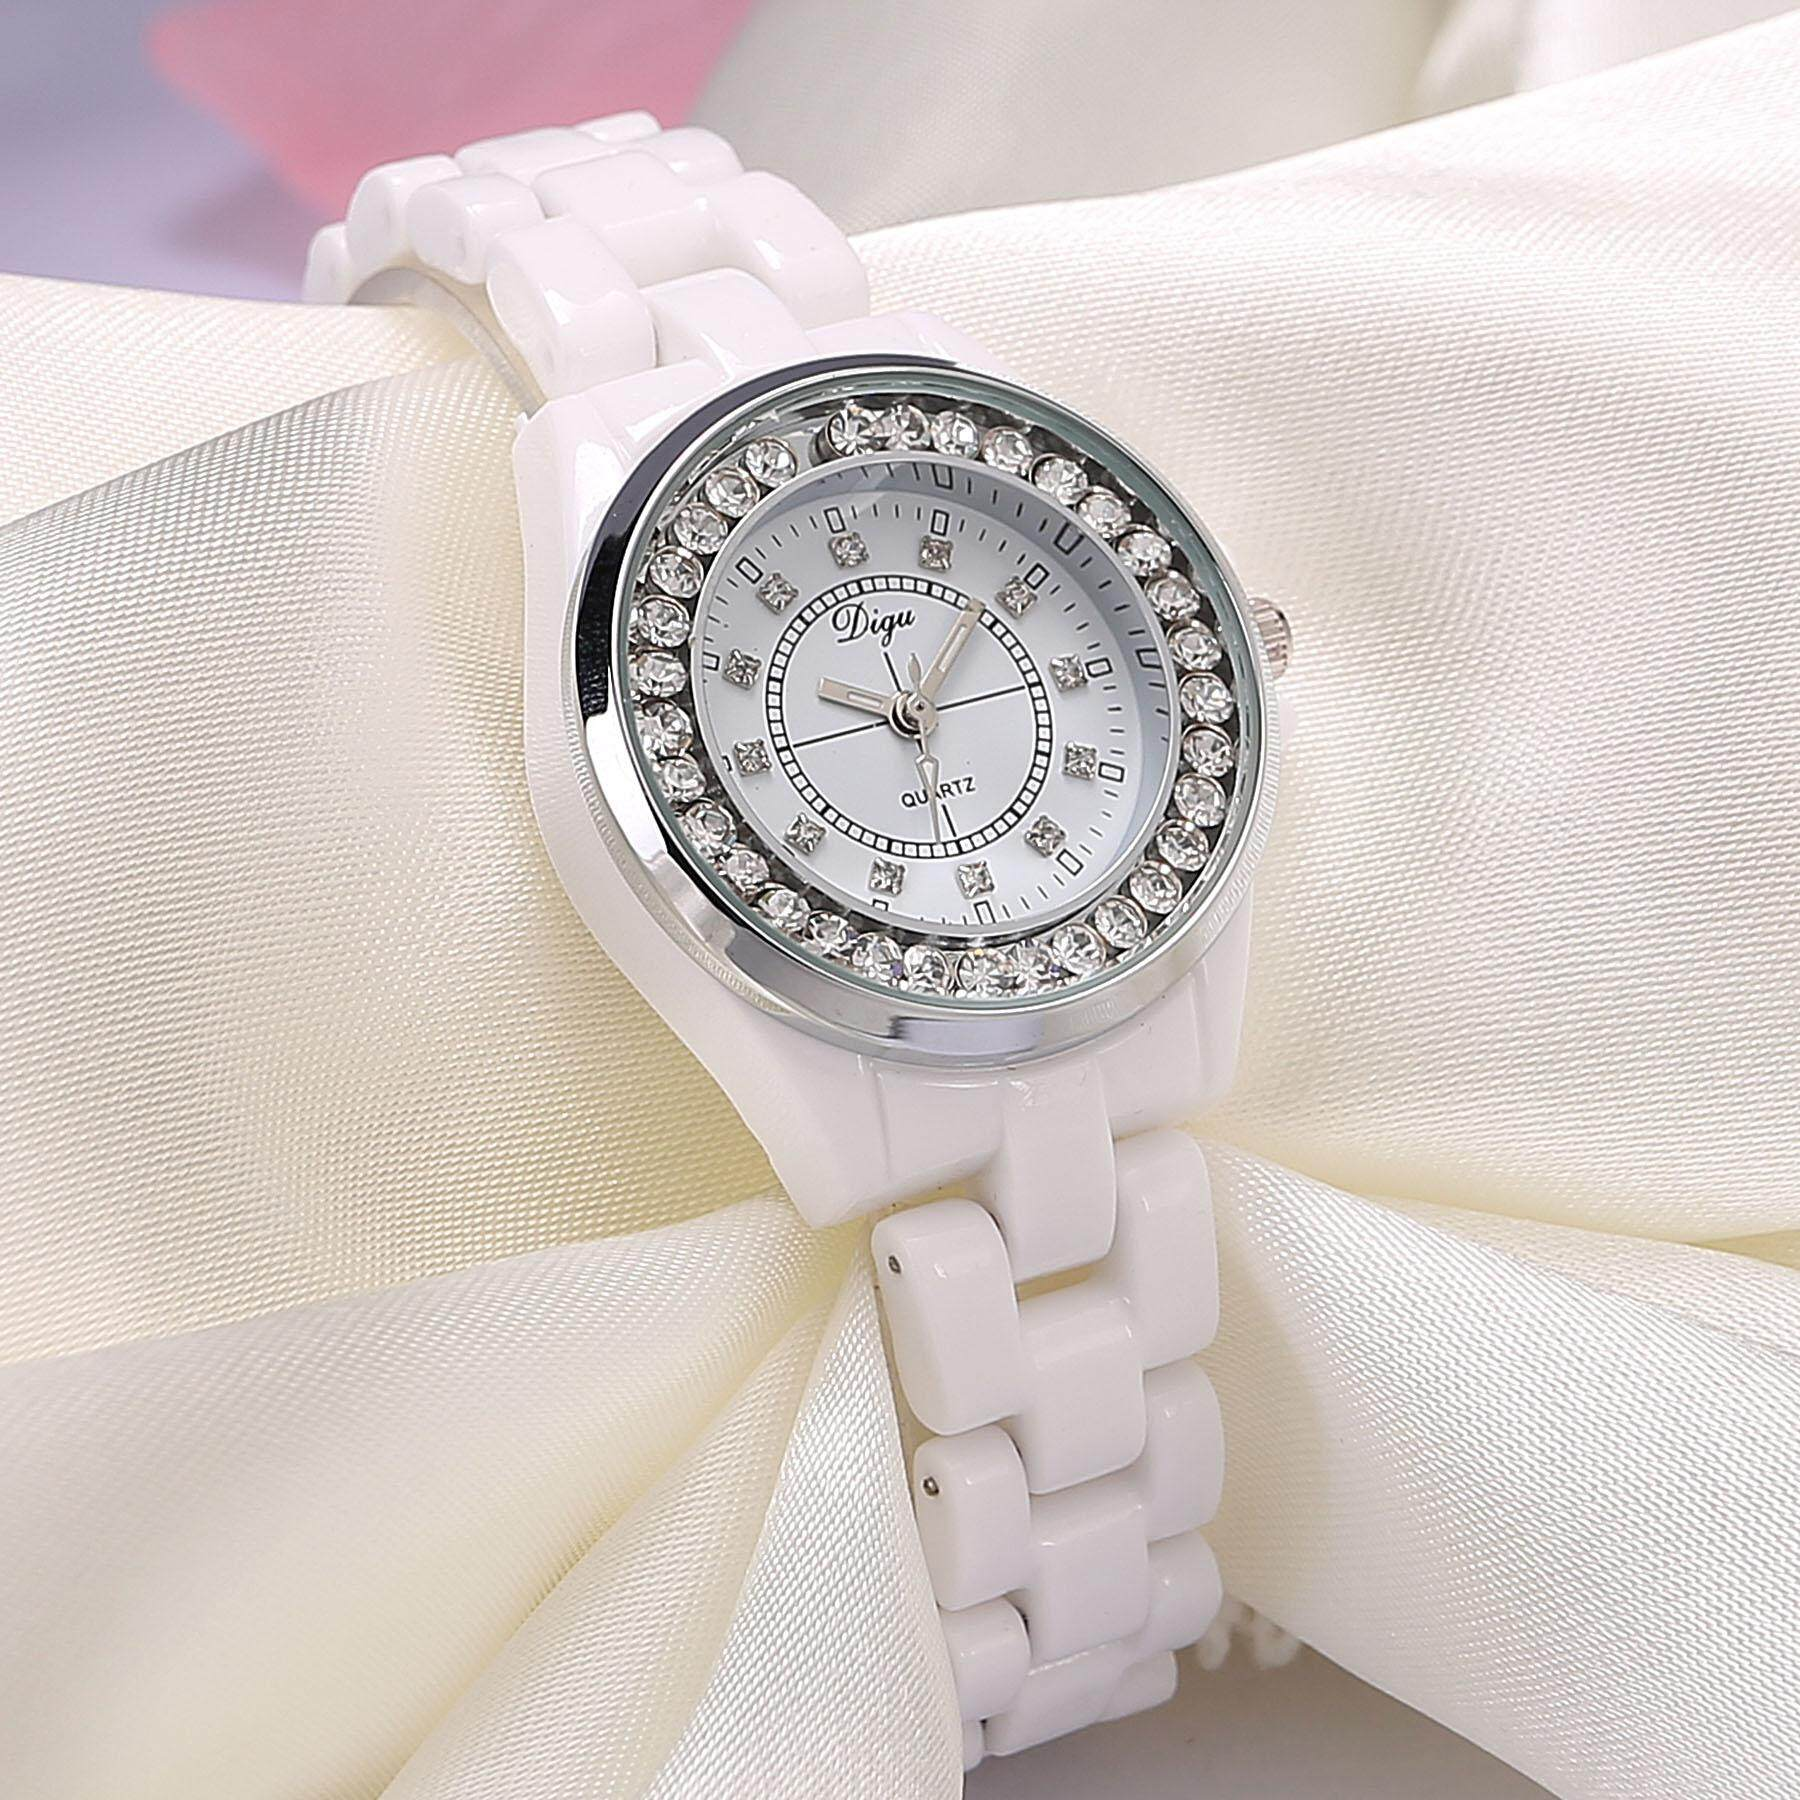 watch watches women Trend of Fashion Leisure Waterproof Ceramic White Quartz with Man-made Diamond Students 2018 New Style Korean Style